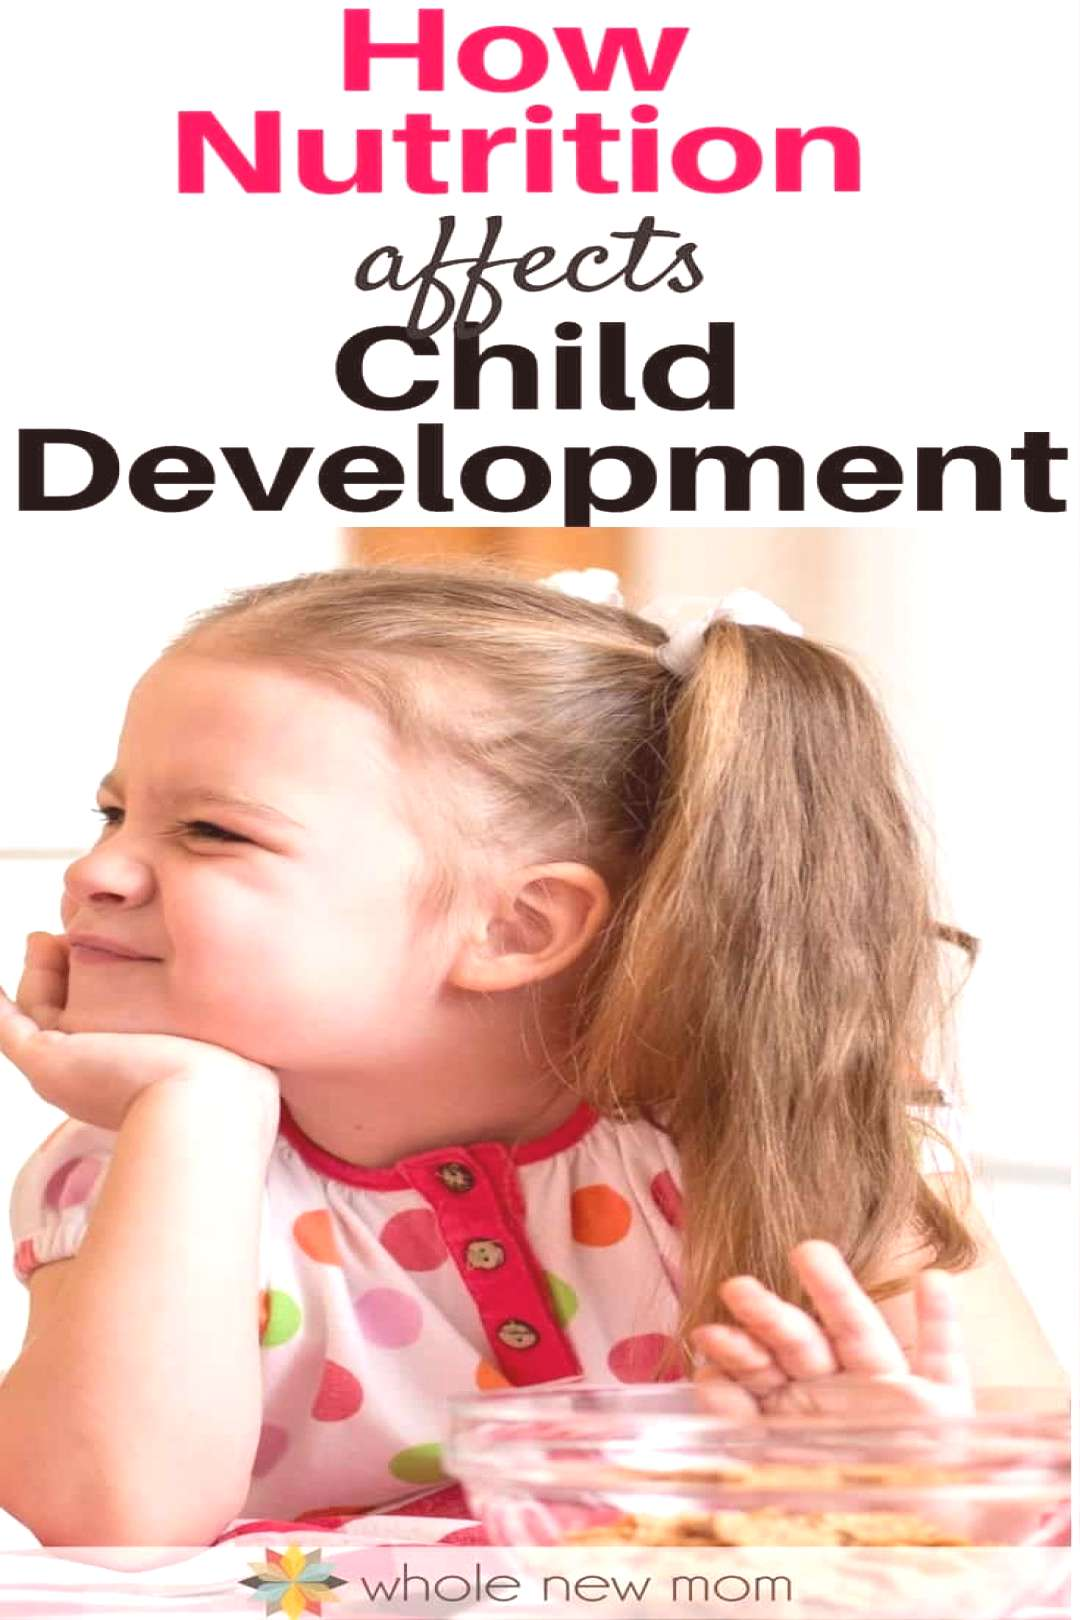 Nutrition and Child Development - What You Need to Know